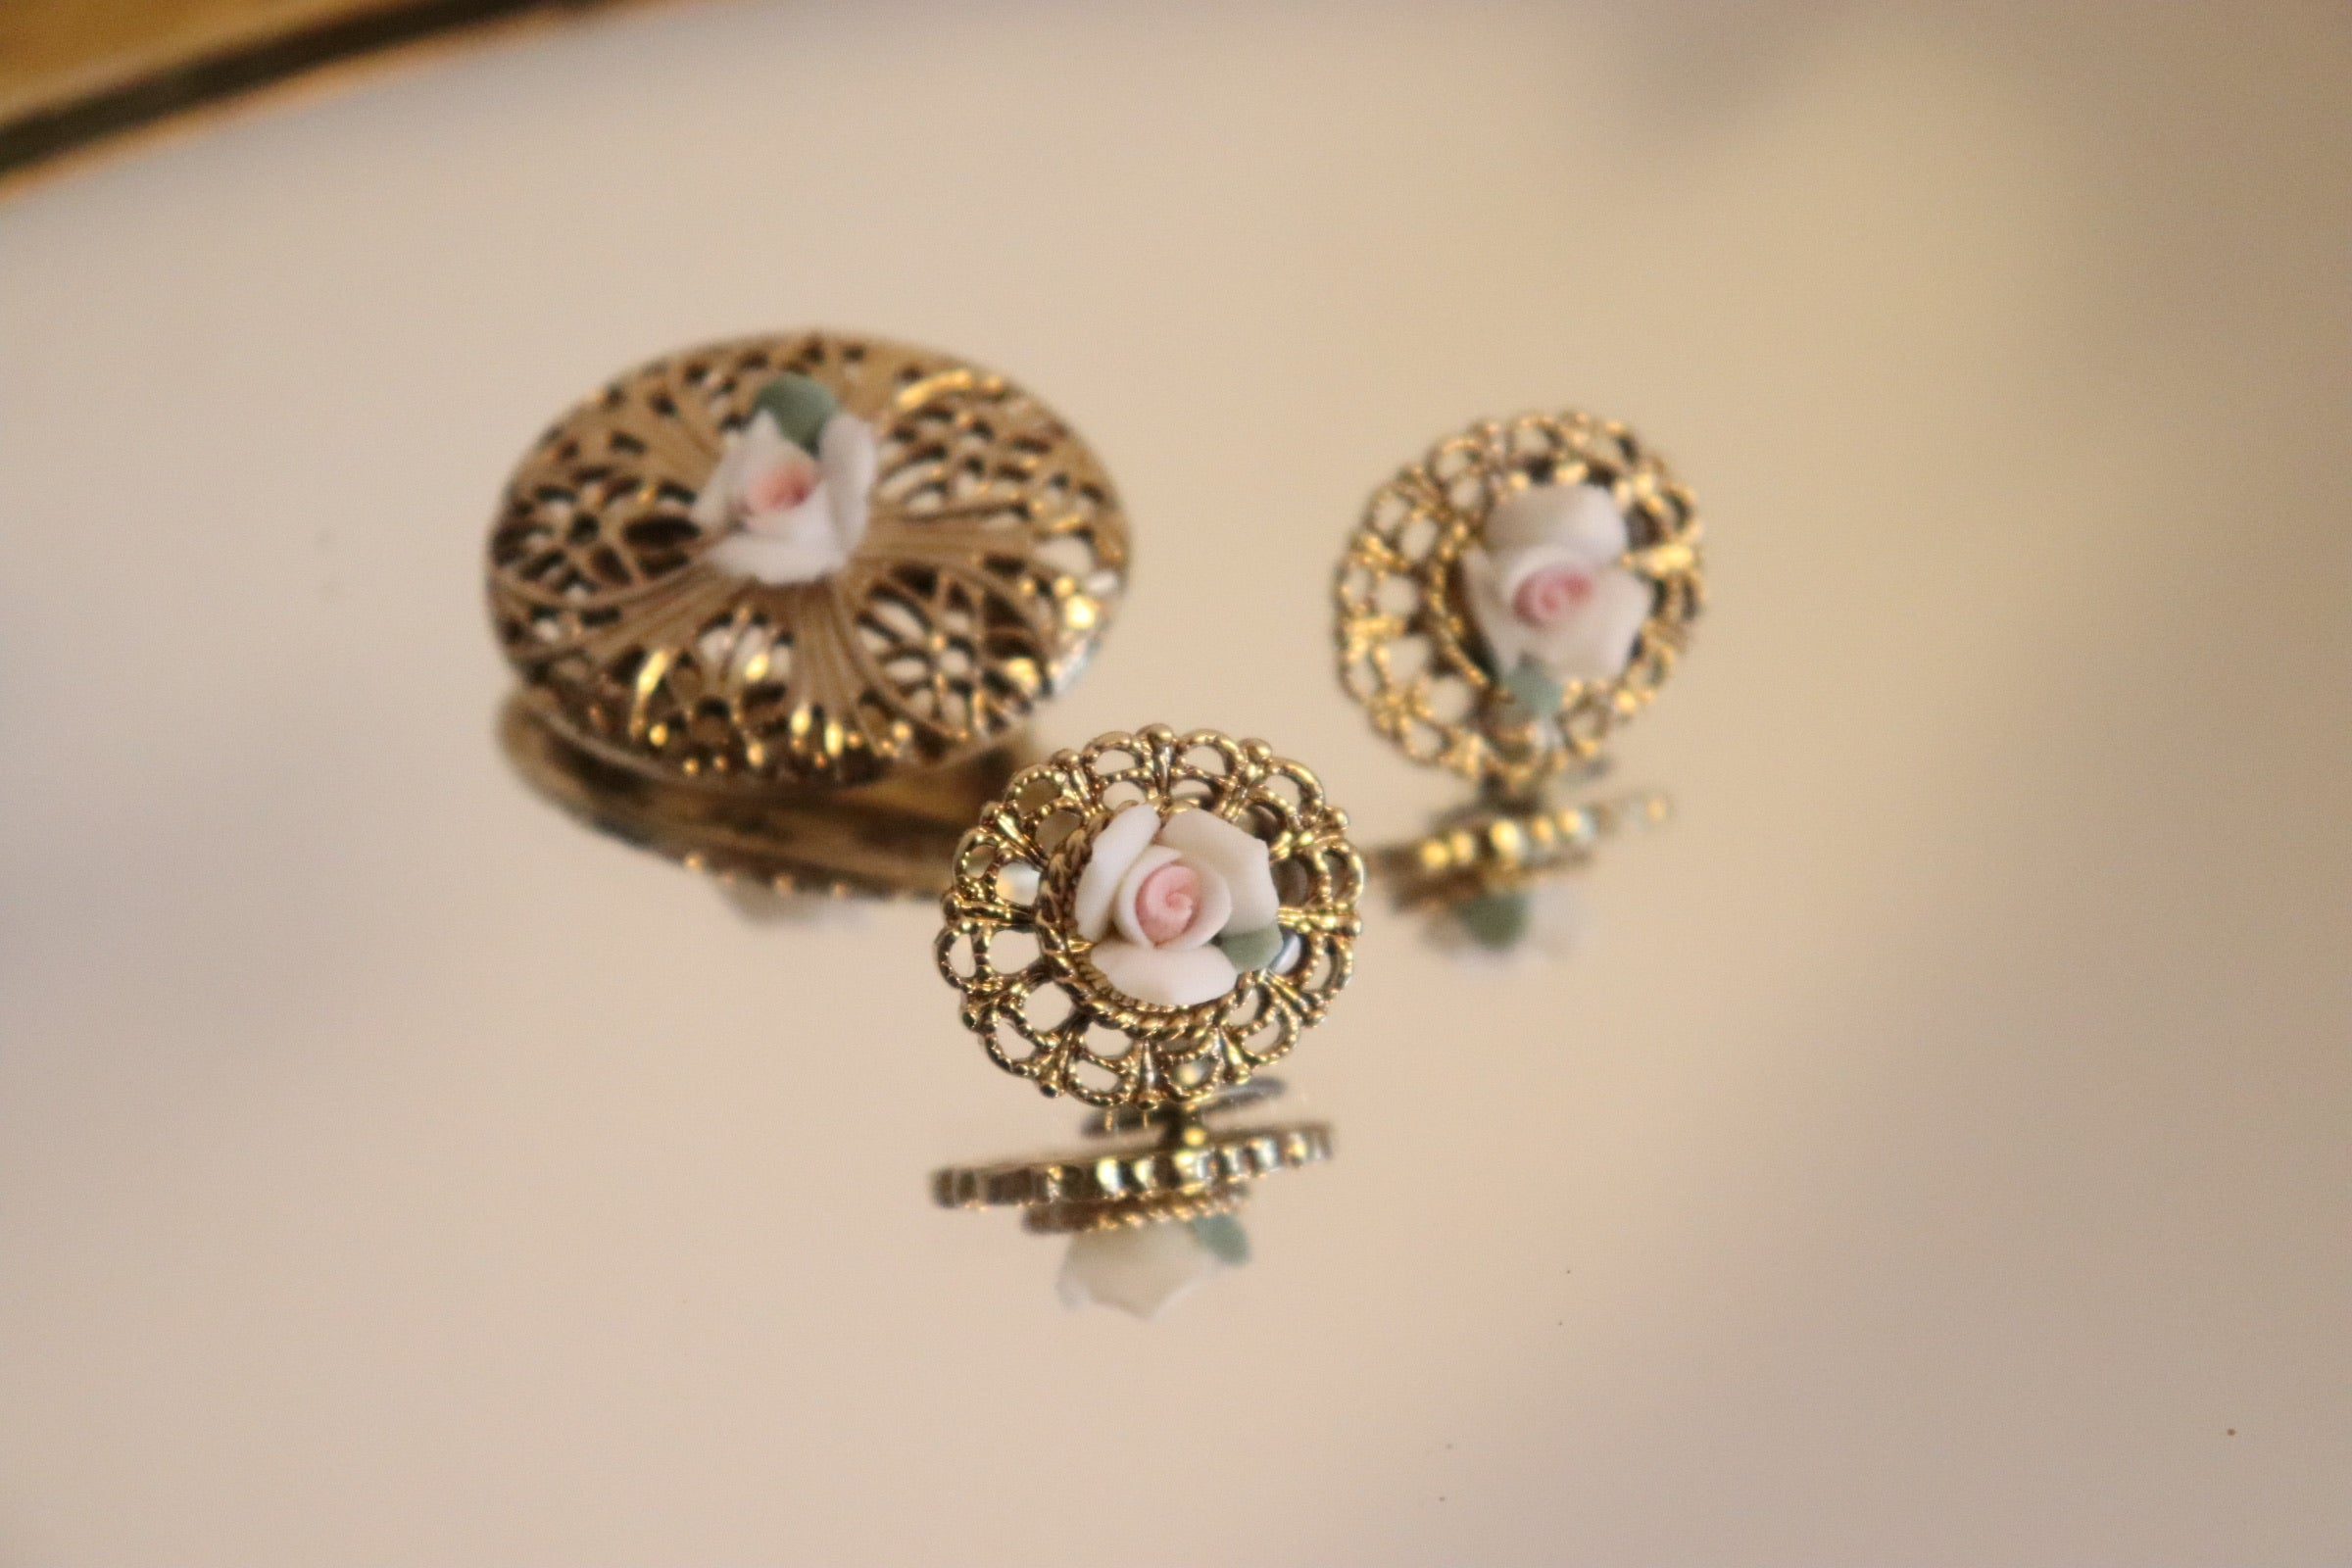 Vintage Ceramic Rose Filigree Brooch + Earrings Set